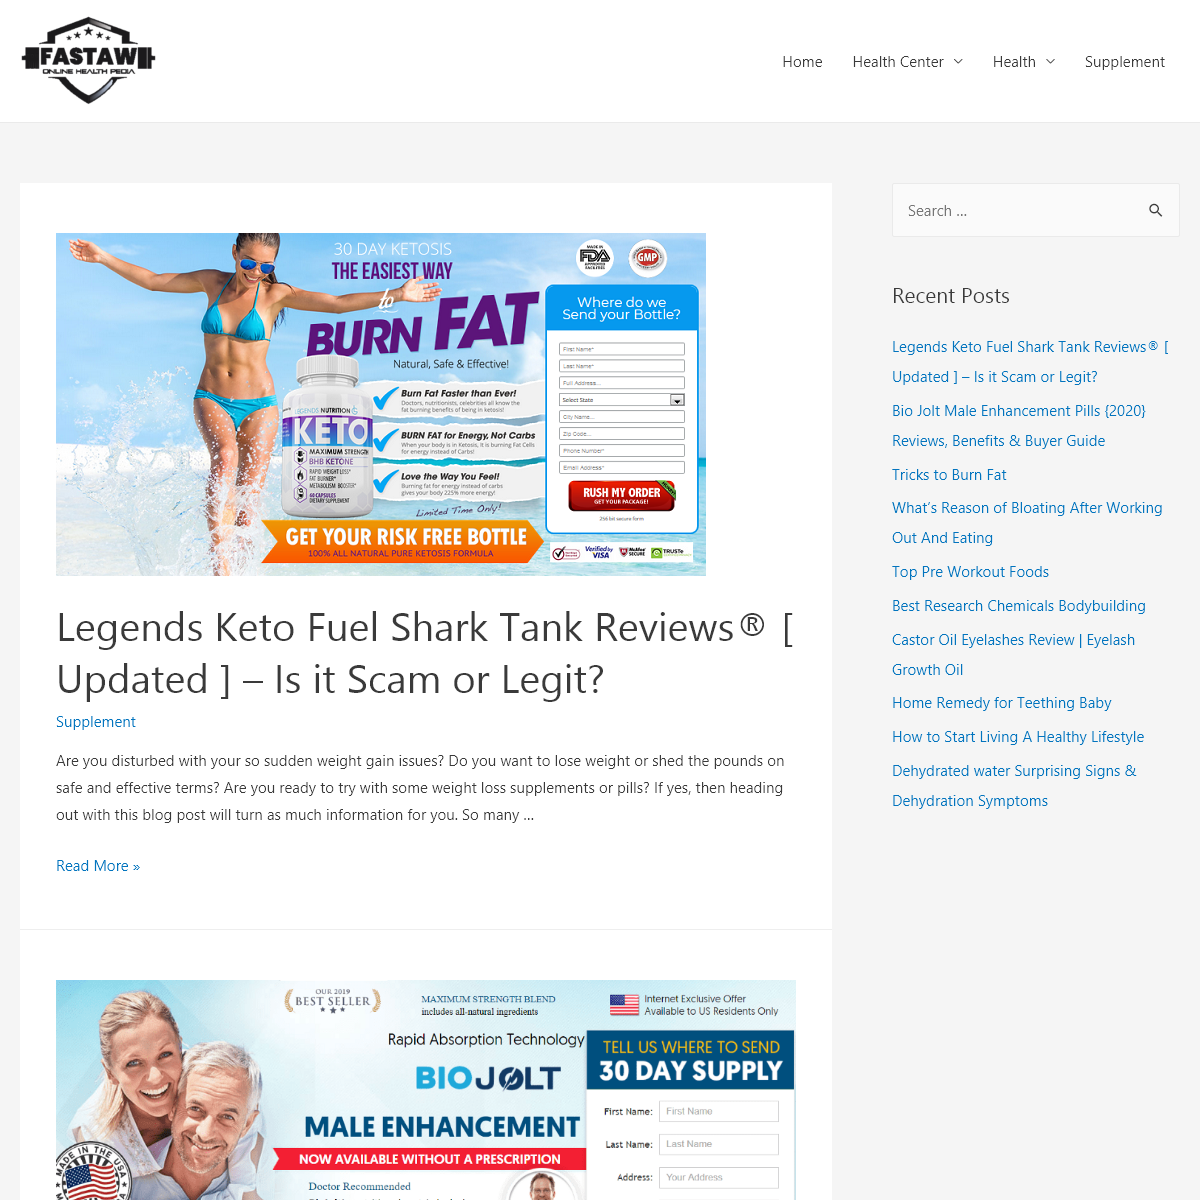 Fastaw - Best Weight Loss and Male Enhancement Products